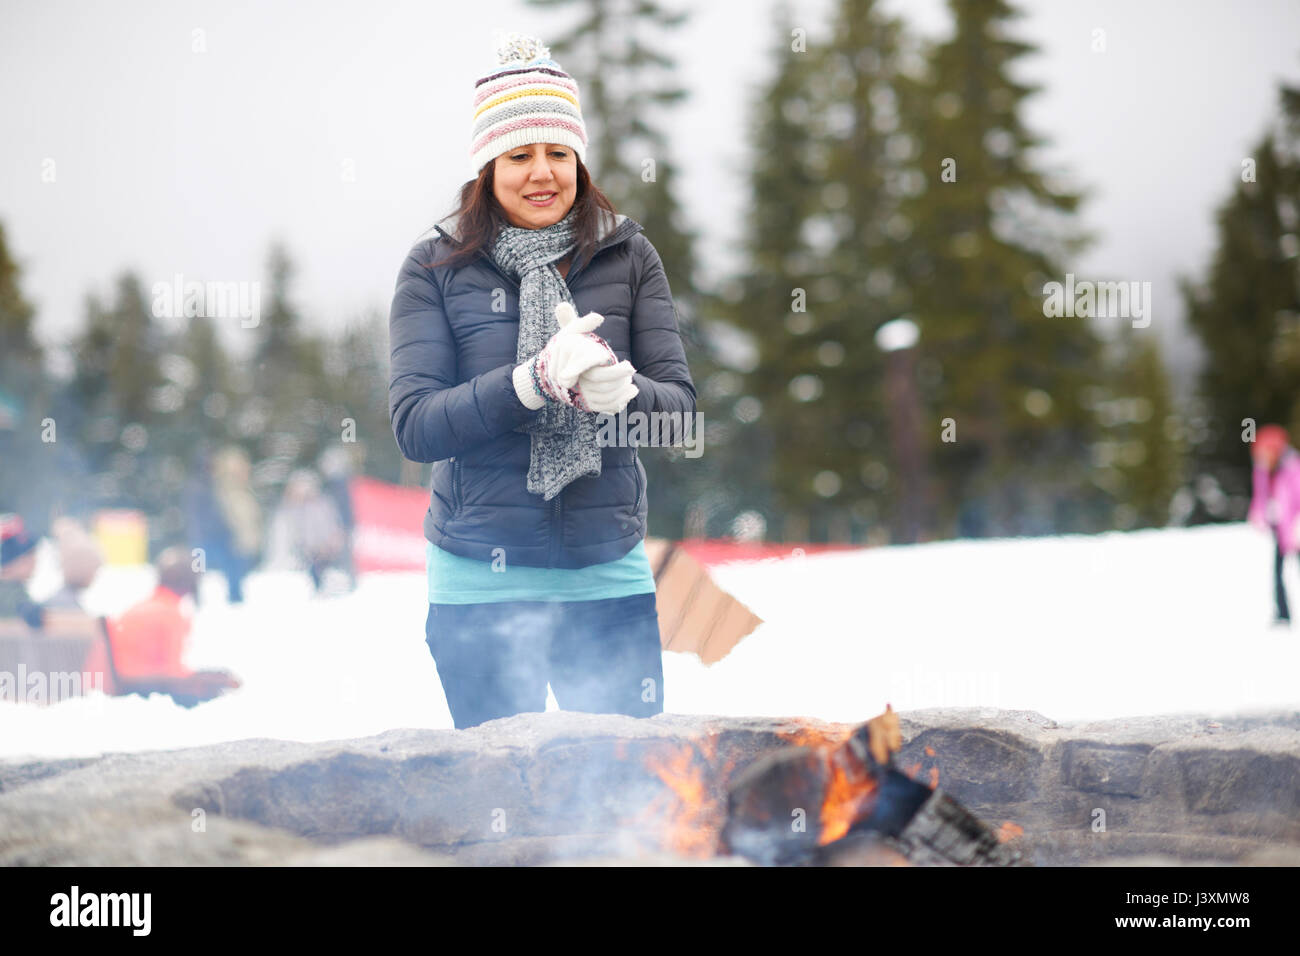 Woman warming by fire pit, Vancouver, Canada Stock Photo